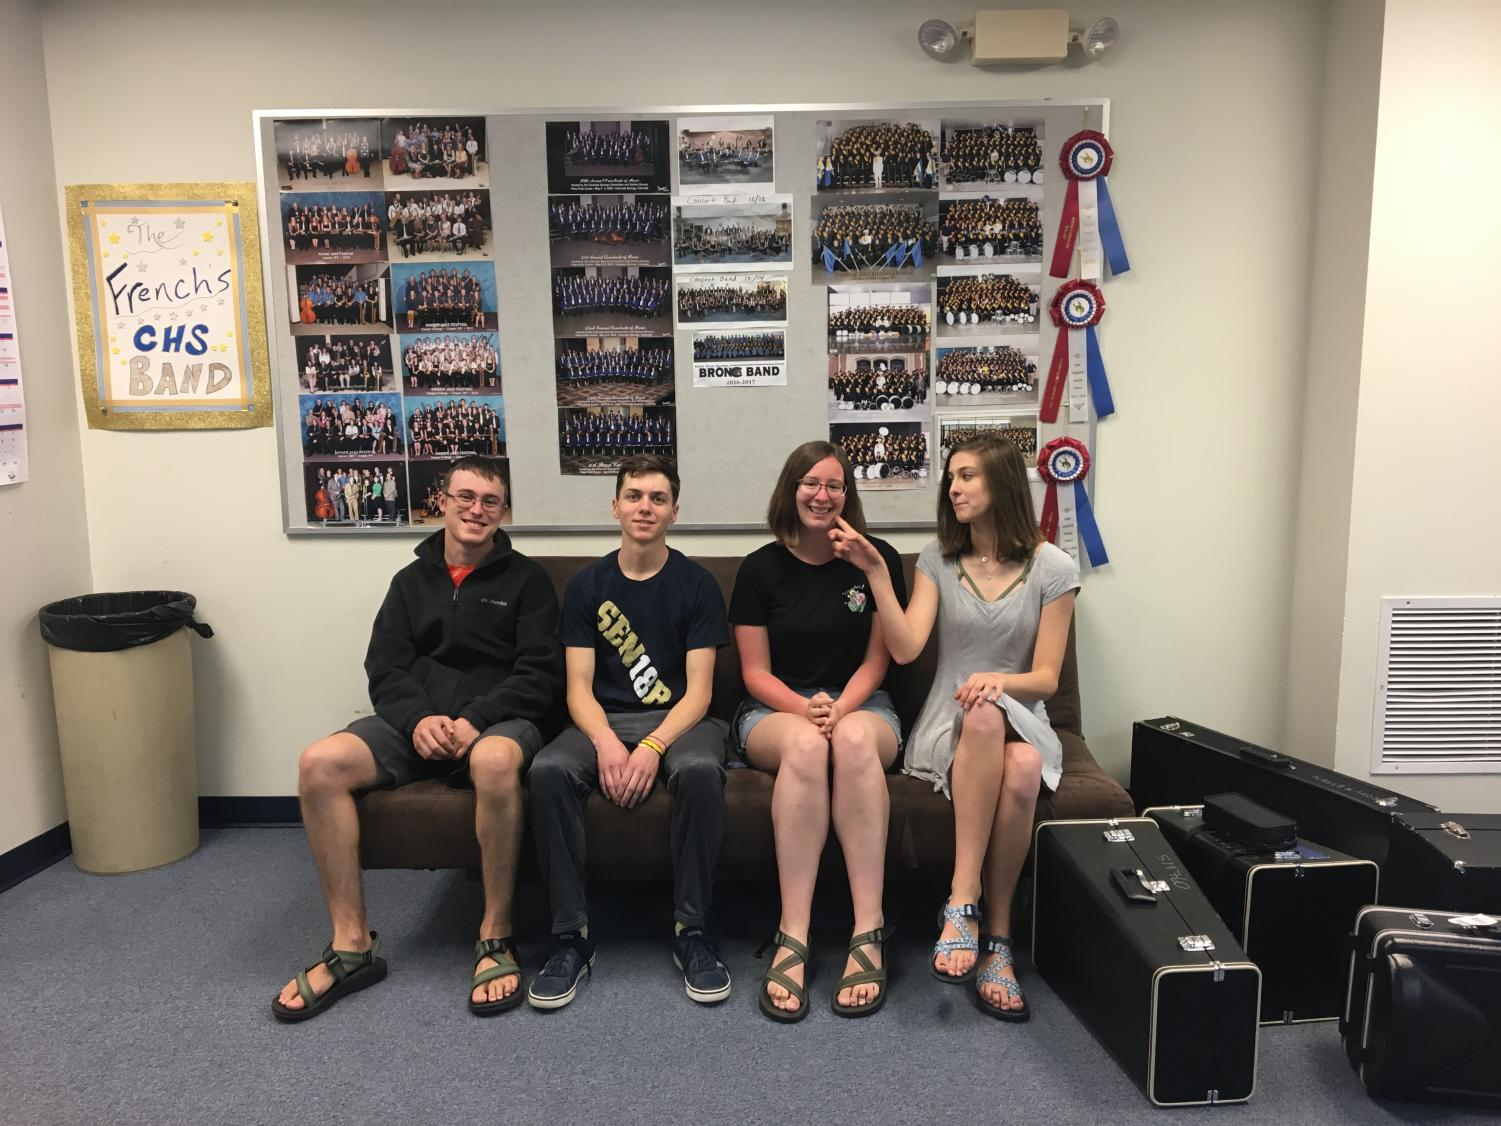 Finnegan Jackson, Duke Dickson, Emma Heydenberk, and Ellie Wooden all sitting in the band room.